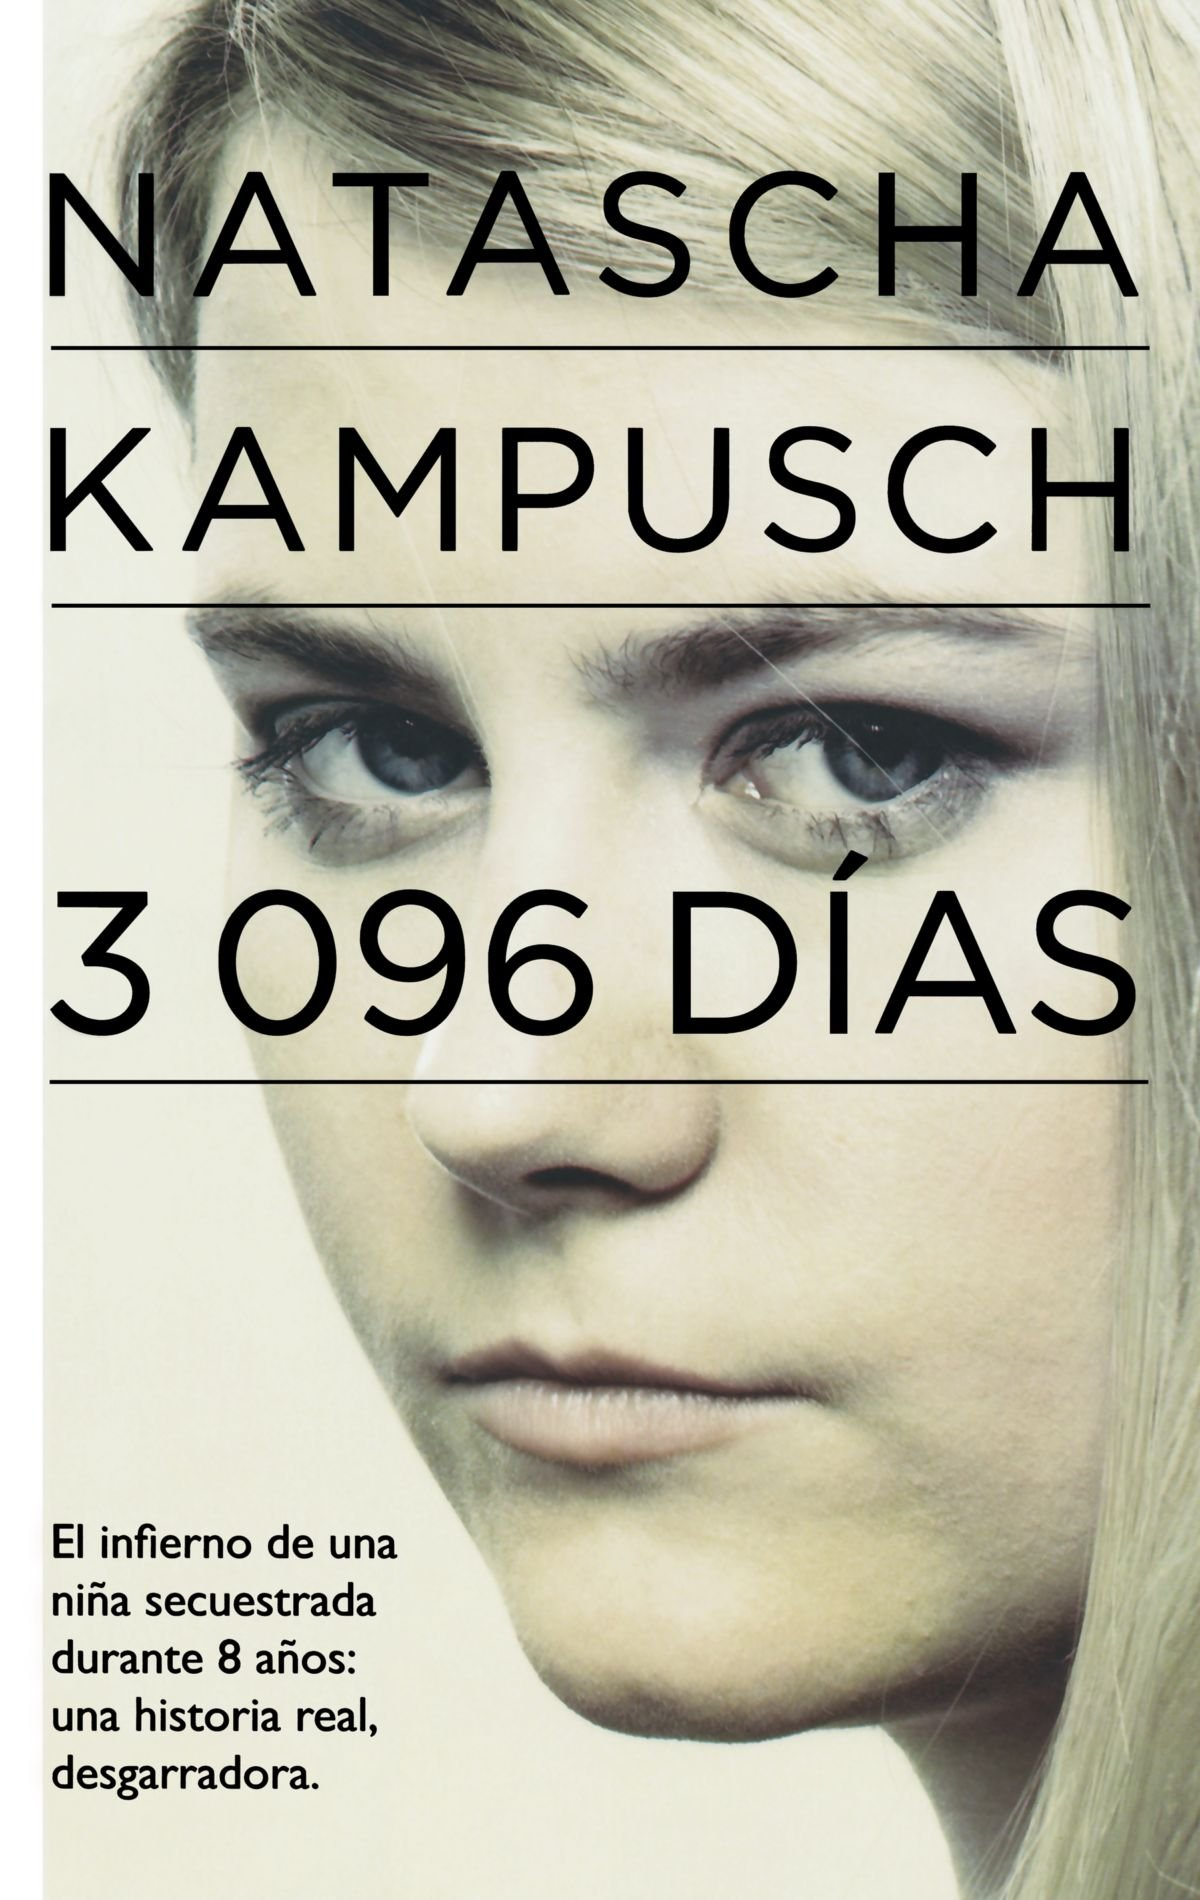 3096 dias 3 096 days in captivity spanish edition natascha 3096 dias 3 096 days in captivity spanish edition natascha kampusch 9786071109446 amazon books fandeluxe Gallery